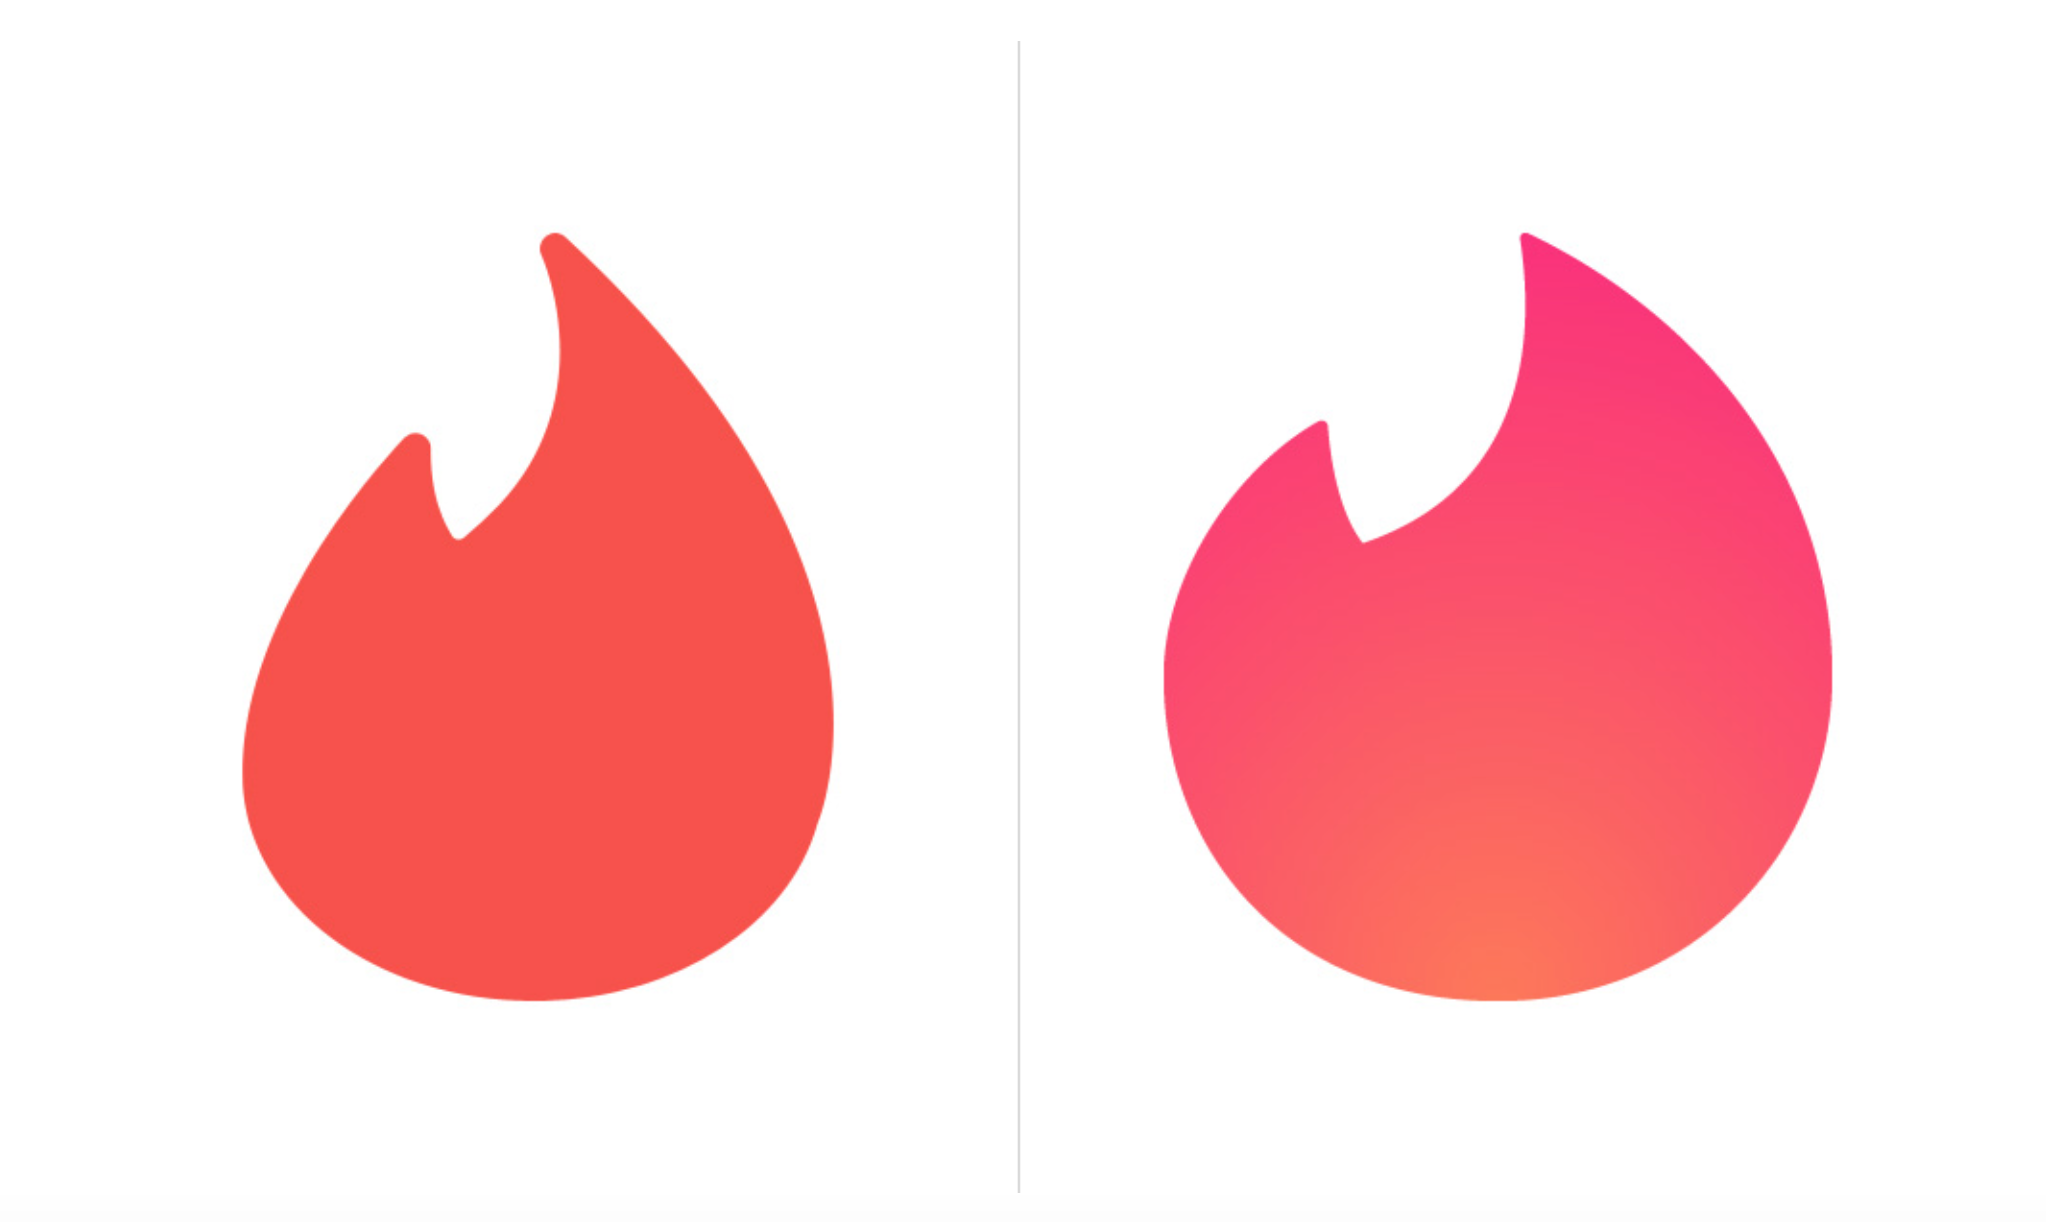 Modern dating service with a flame in its logo